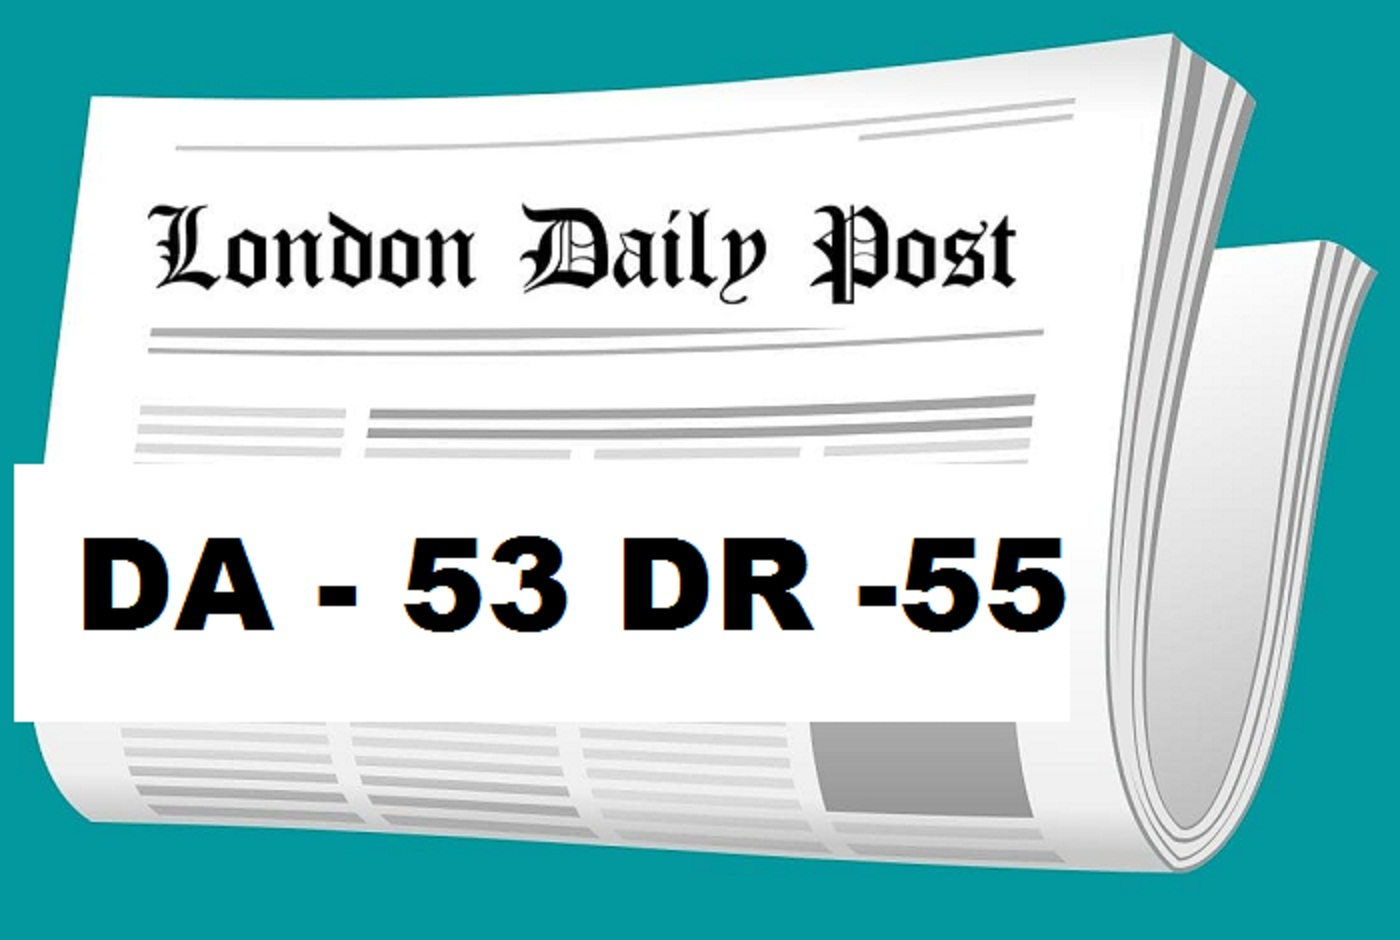 publish a guest post on london daily post DA 53 DR 55